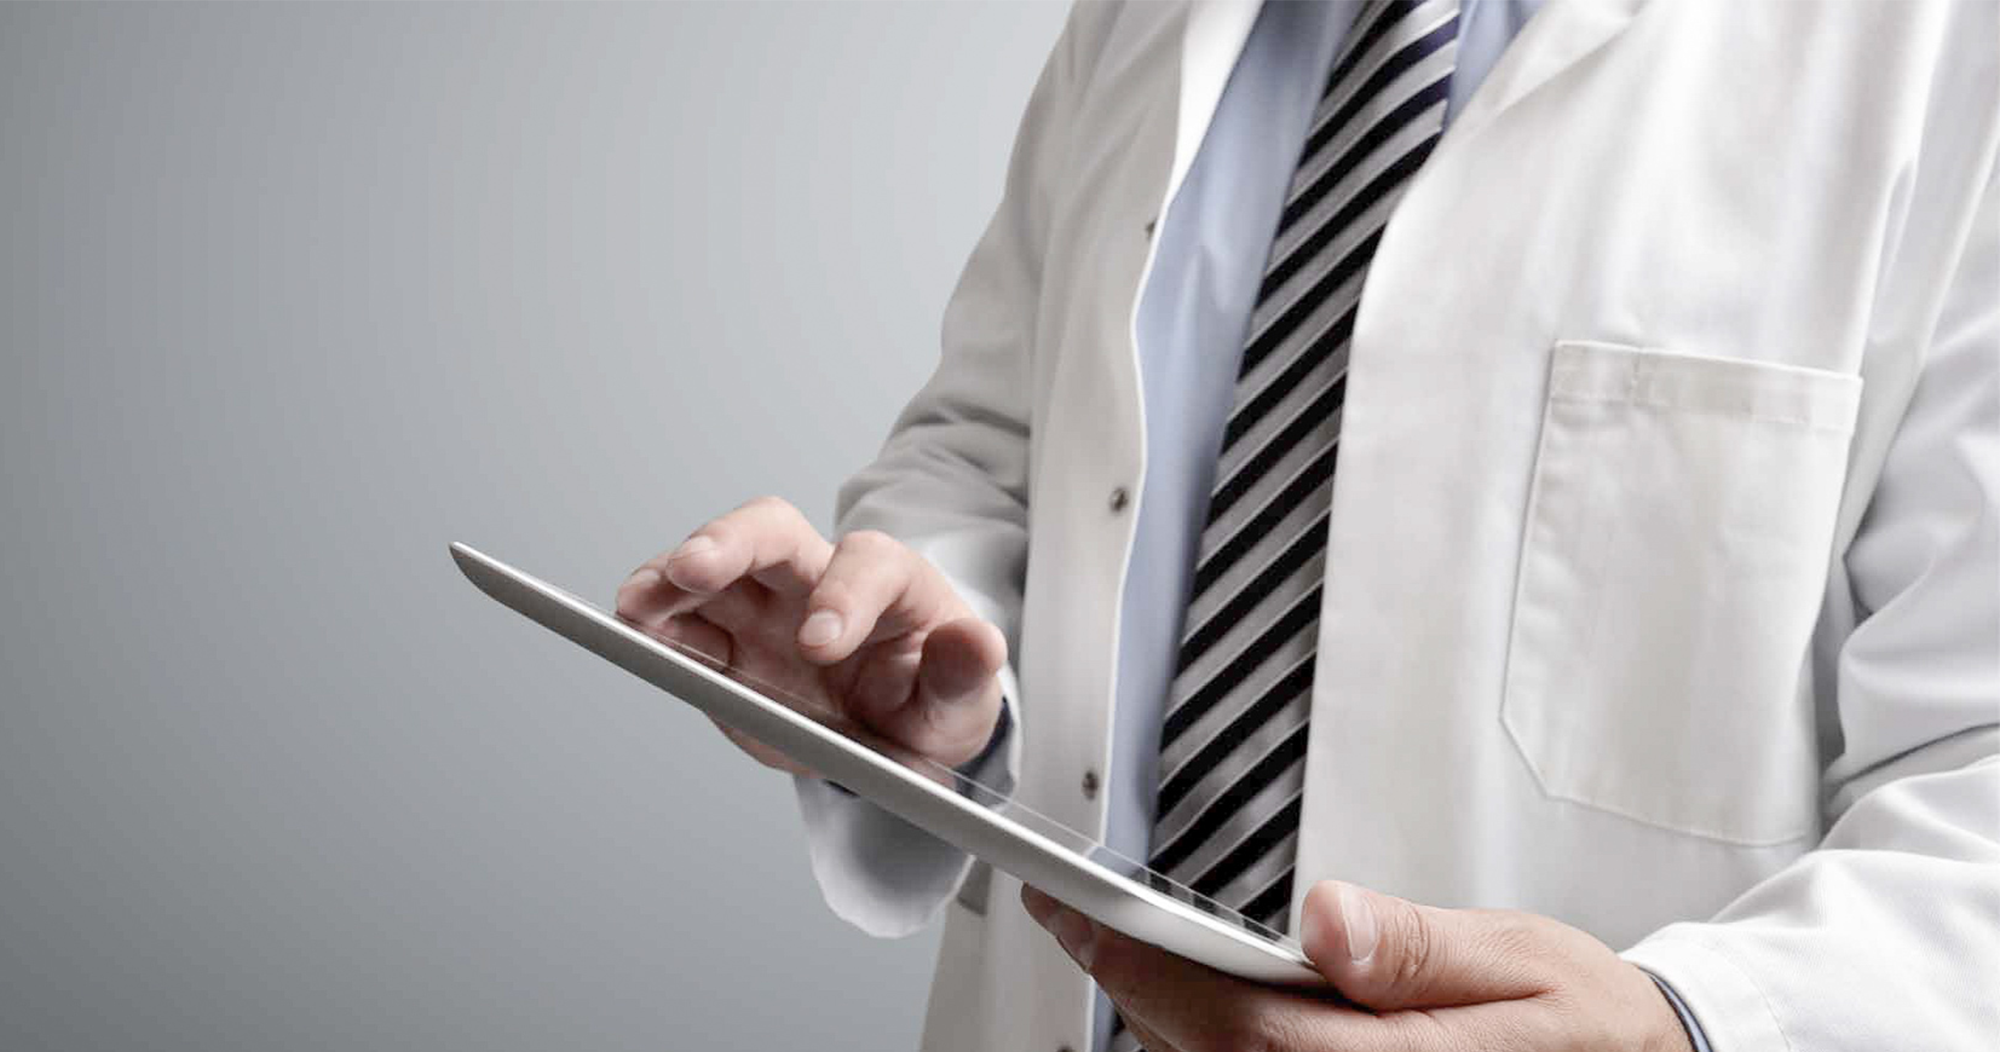 A close up of a person in a white medical coat holding a tablet device